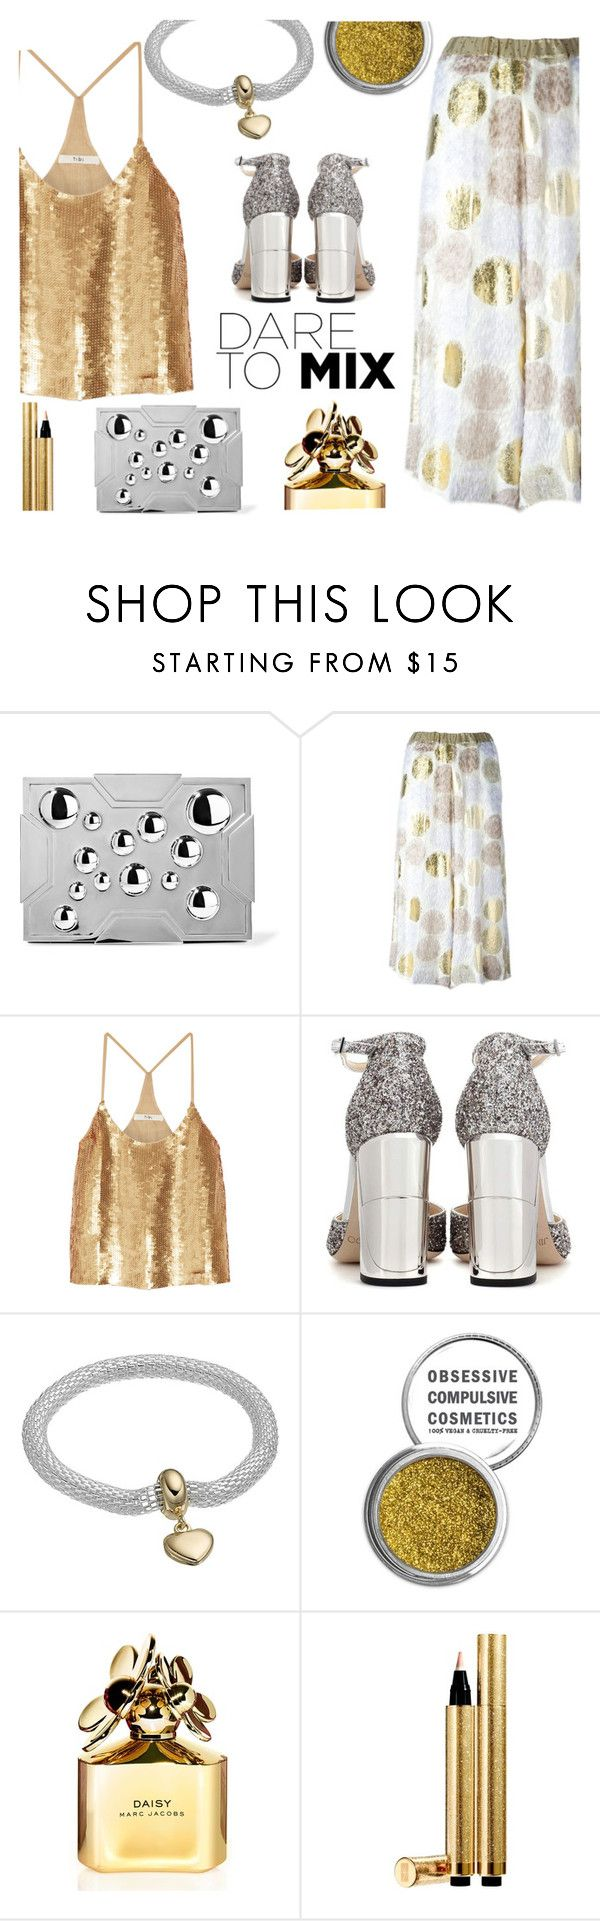 """Dare to mix gold and silver"" by juliehalloran ❤ liked on Polyvore featuring Lee Savage, Antonio Marras, TIBI, Jimmy Choo, Obsessive Compulsive Cosmetics, Marc Jacobs and Yves Saint Laurent"